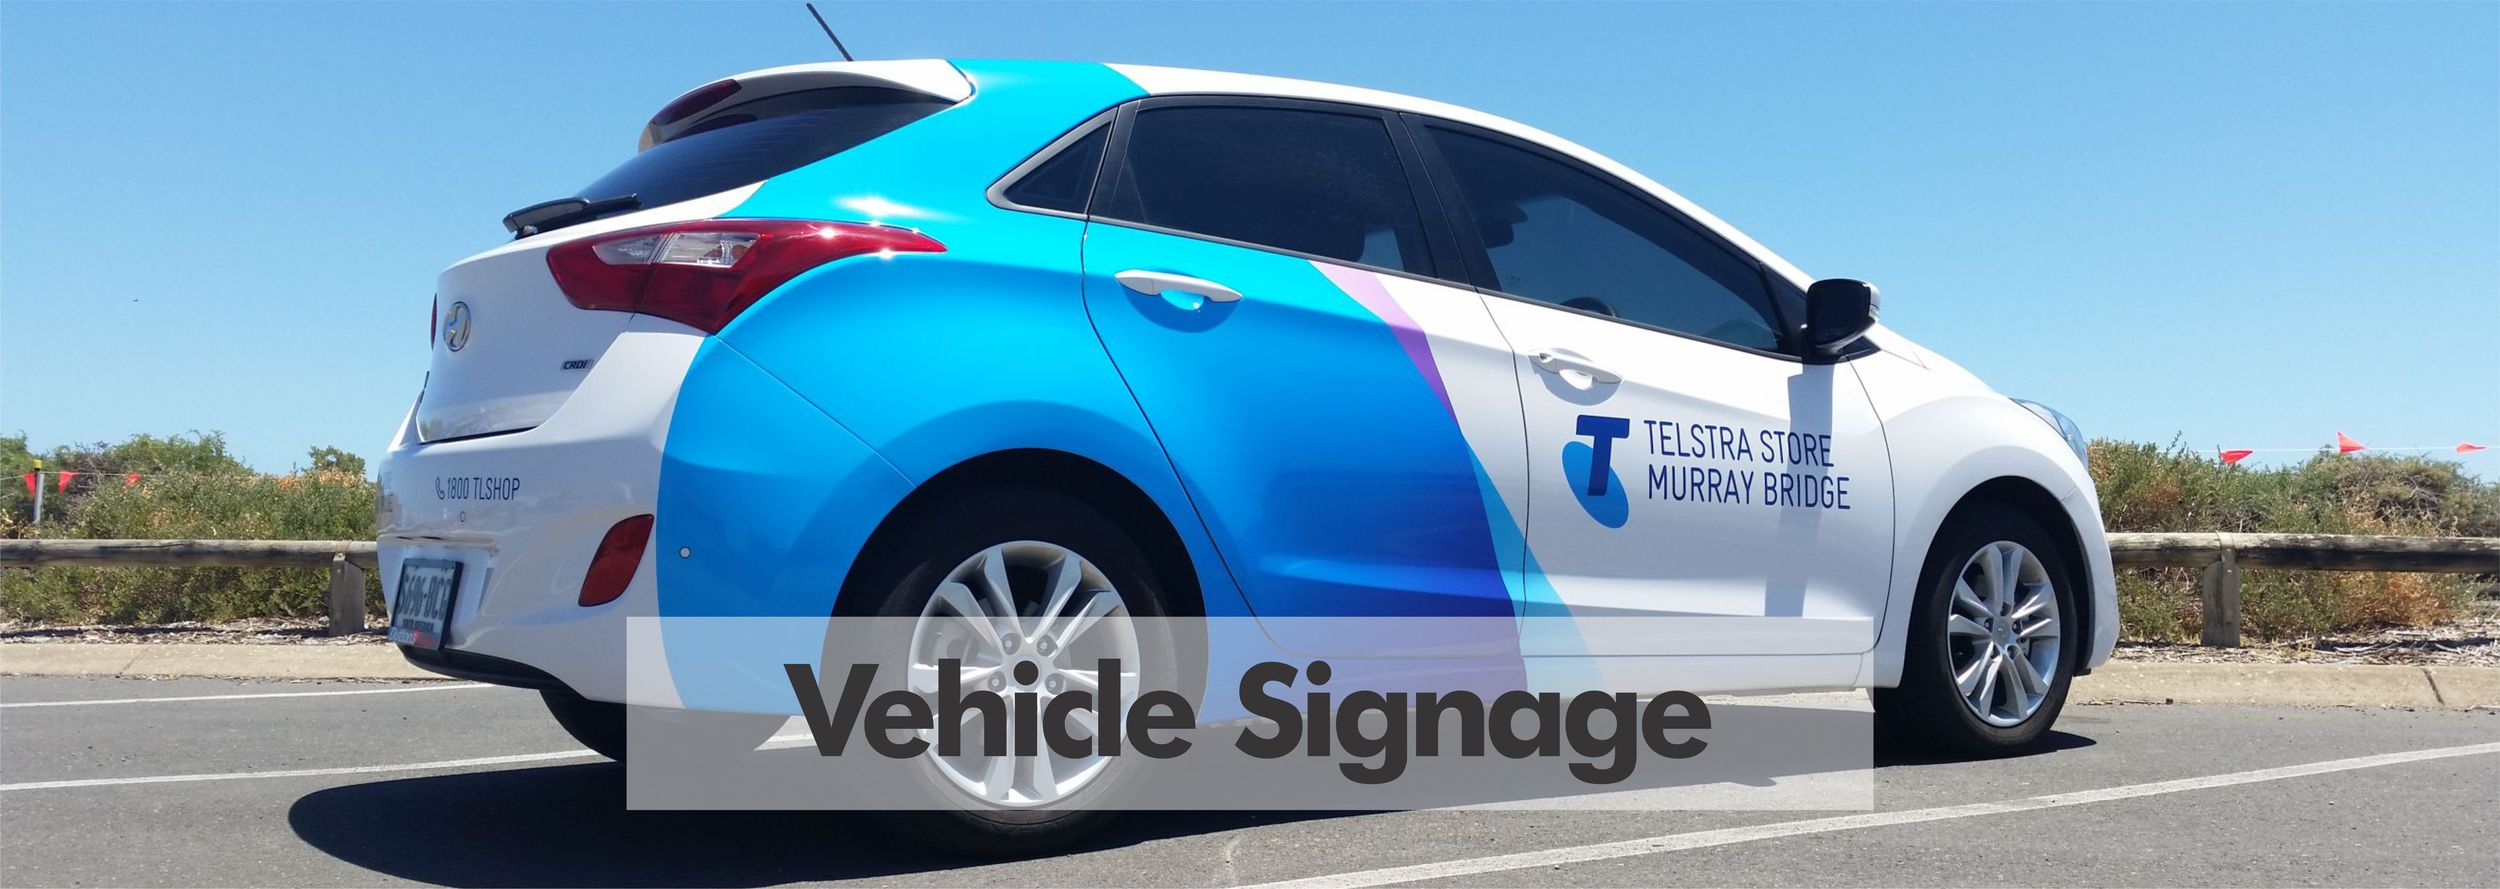 Vehicle Signage - Sign Colour - Signcolour - Aldinga Beach - Aldinga - Lonsdale Signage - Lonsdale signs - McLaren Vale sign - Victor Harbor Sign - Willunga Sign - Morphett Vale Sign - vehicle signage - shop front signage.jpg